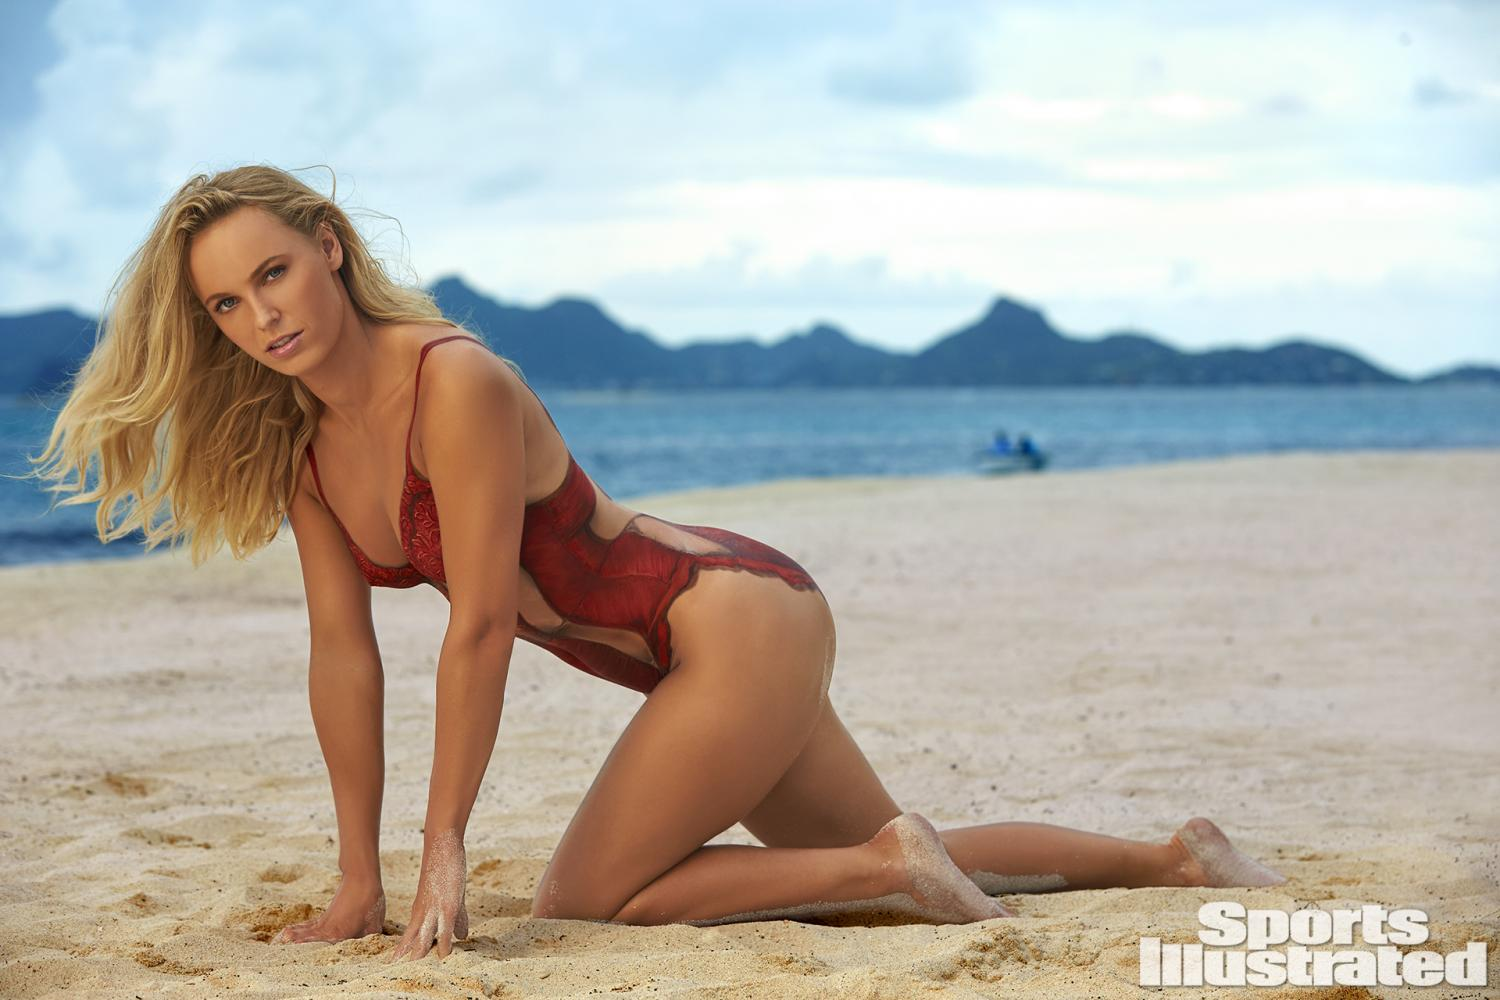 Wta hotties hot shot caroline wozniacki featured again for Hot blog photos